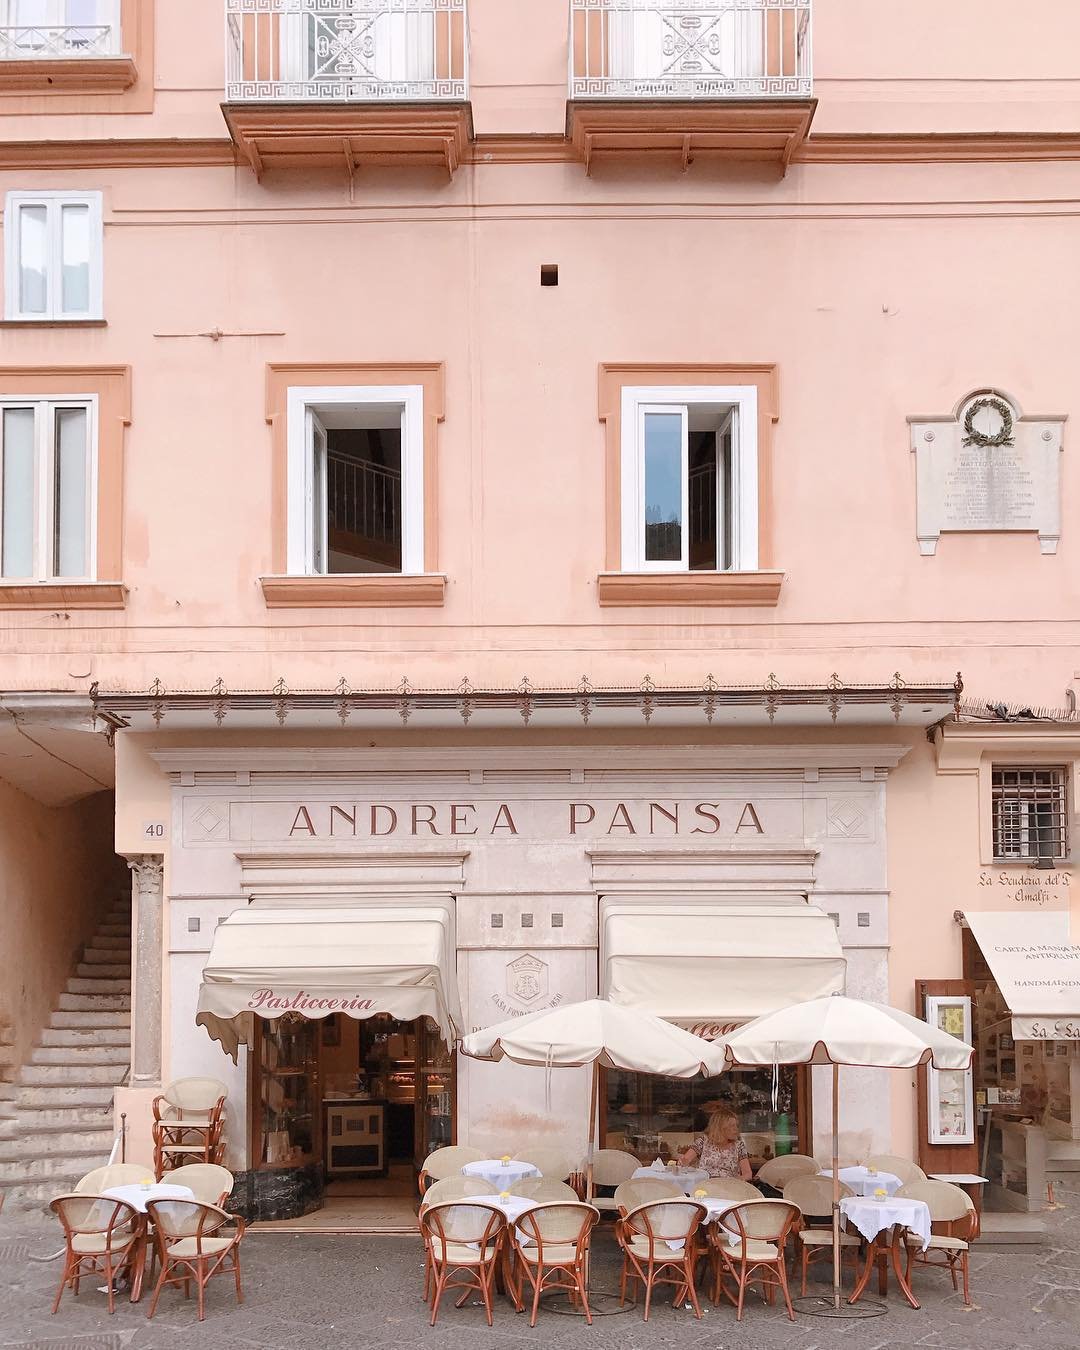 This beautiful  cafe  /pastry  shop on the Amalfi coast contains over 180 years of history. Writers and musicians, aristocrats and commoners have been beguiled by its sweets, cookies, candied fruit and chocolates.